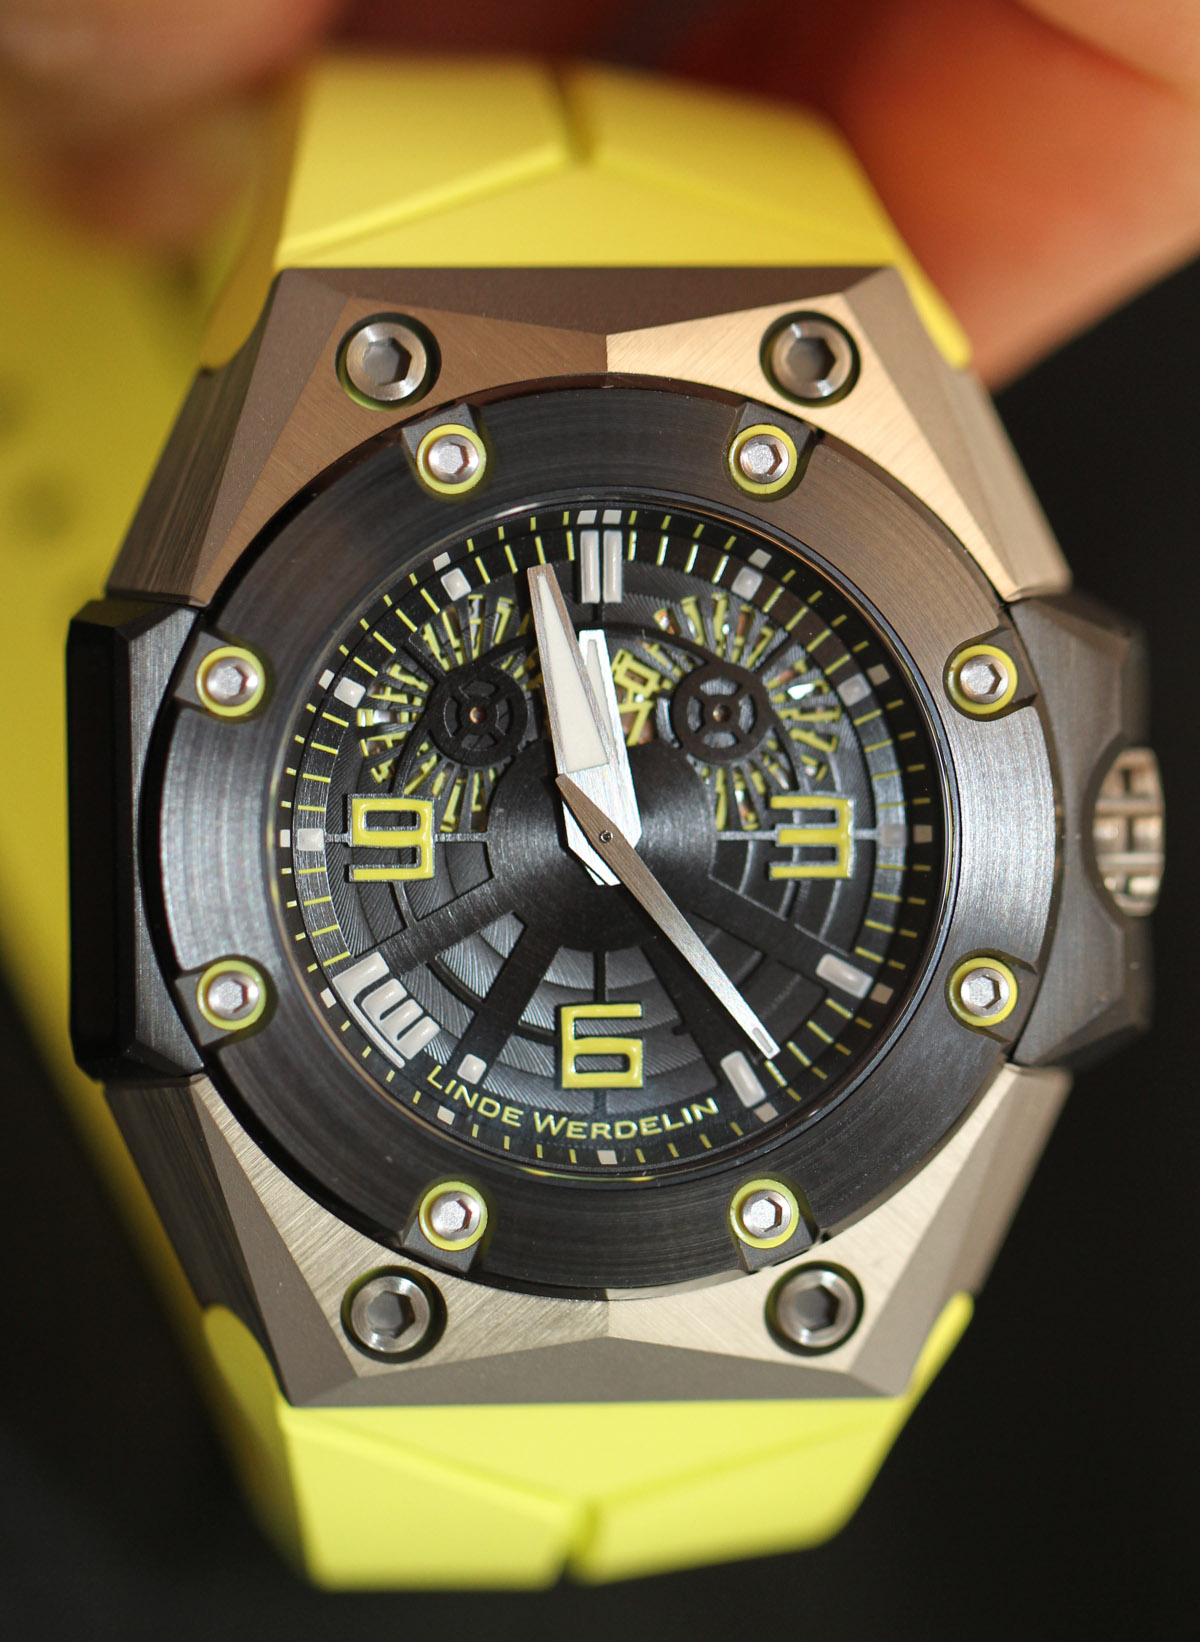 Linde-Werdelin-Oktopus-II-Double-Date-watch-3